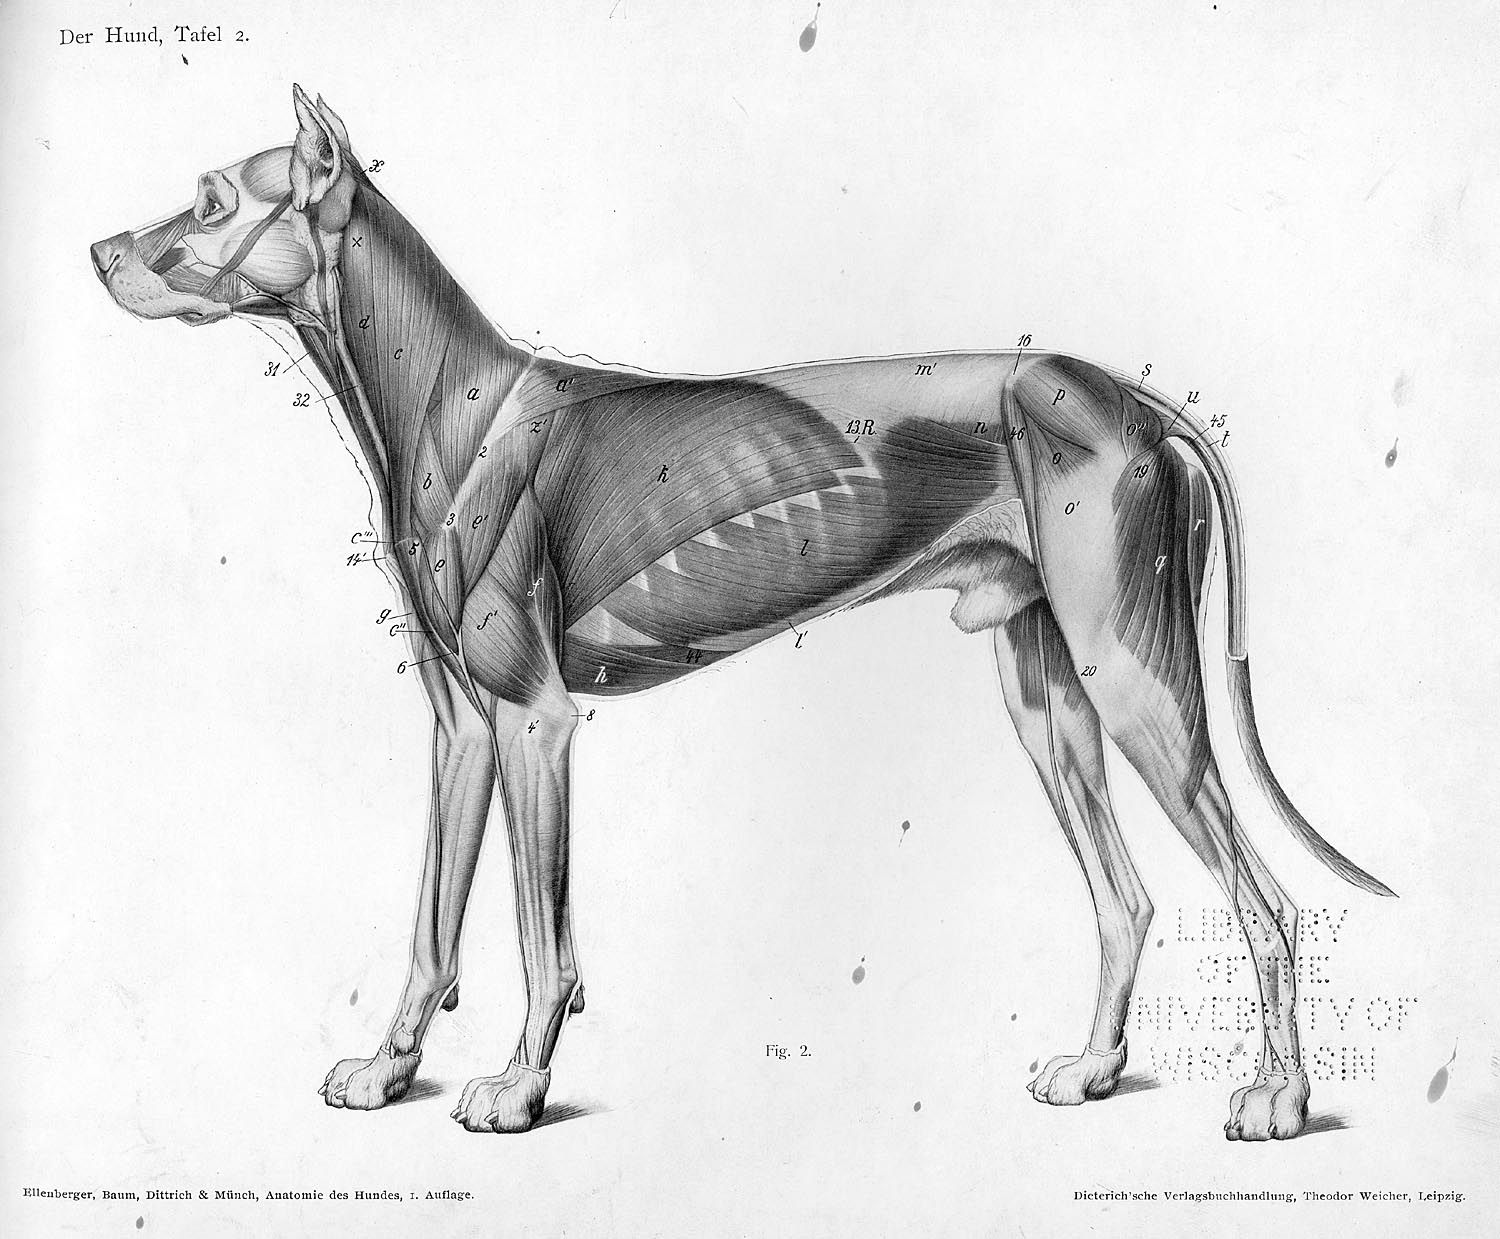 Dog muscle side - Animal Anatomy Artist Reference. | Animal Anatomy ...